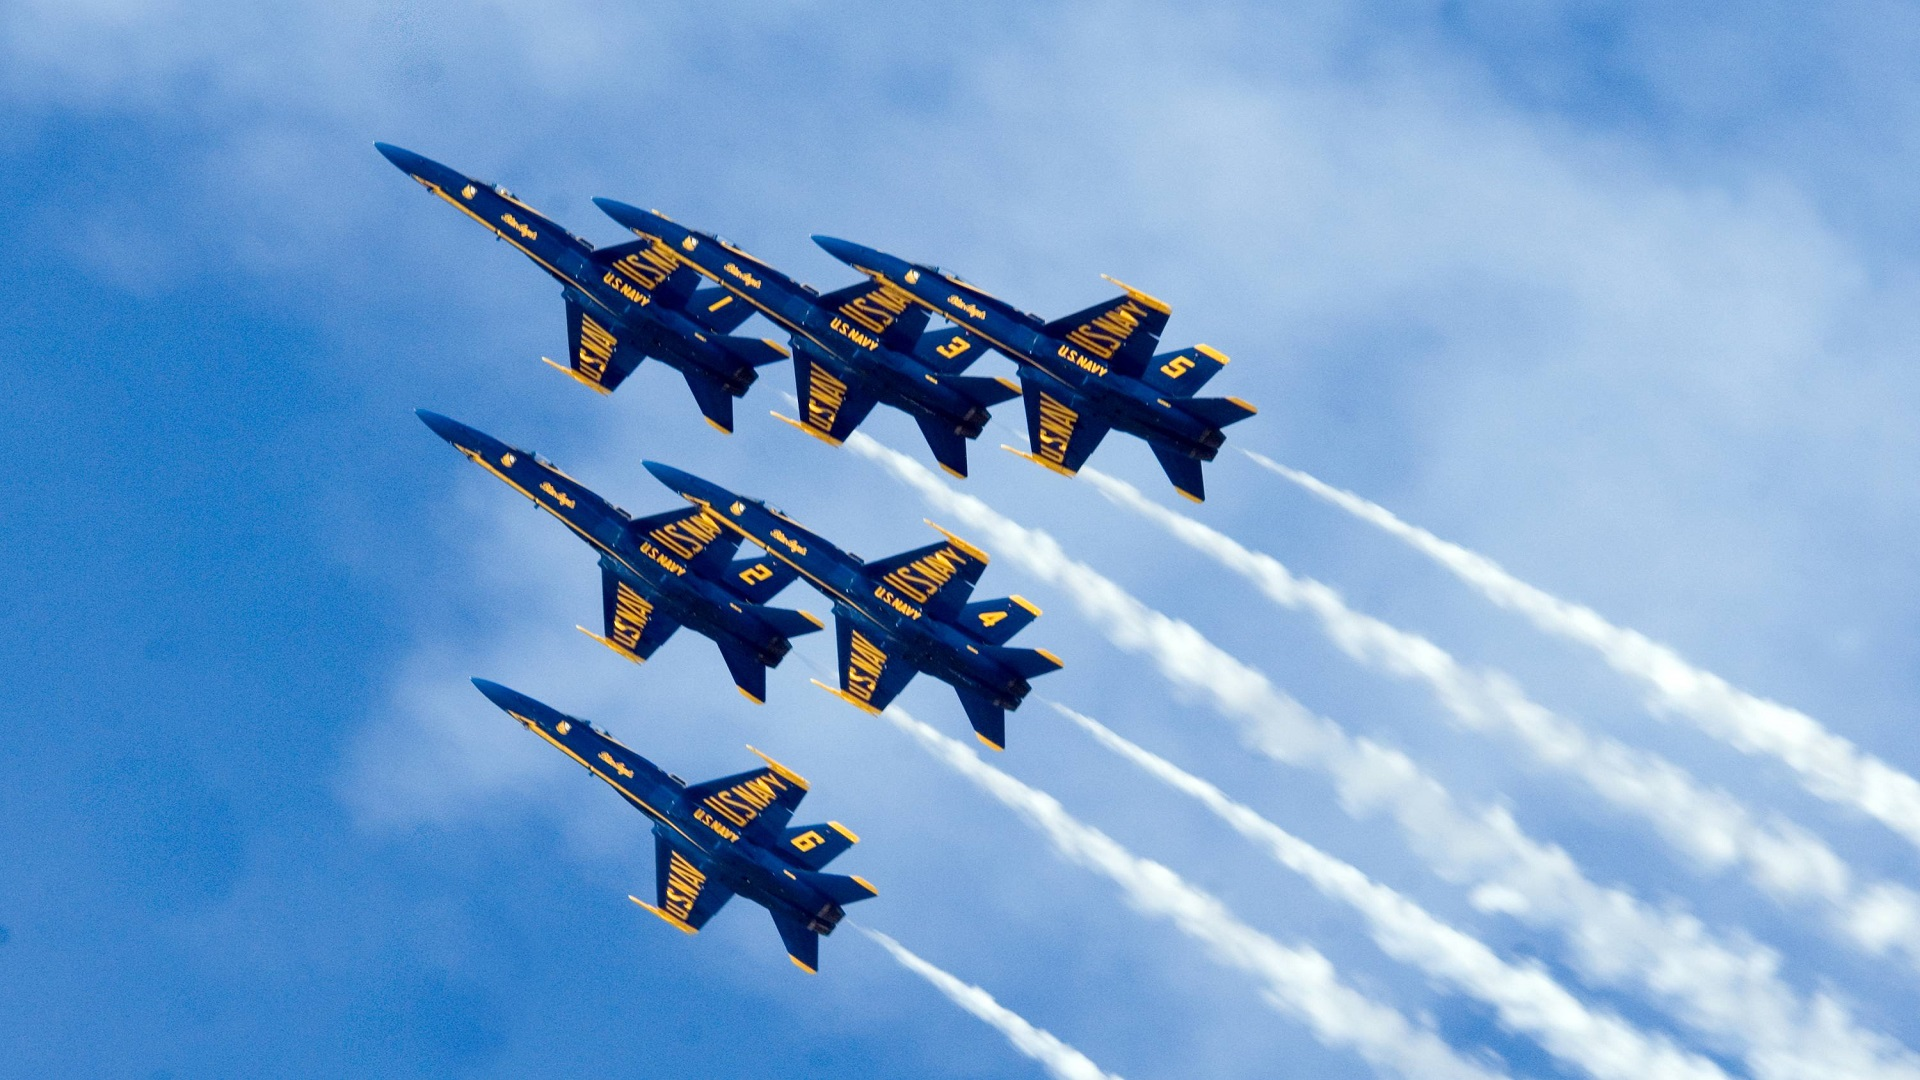 You may even see the U.S. Navy Blue Angels flying overhead.